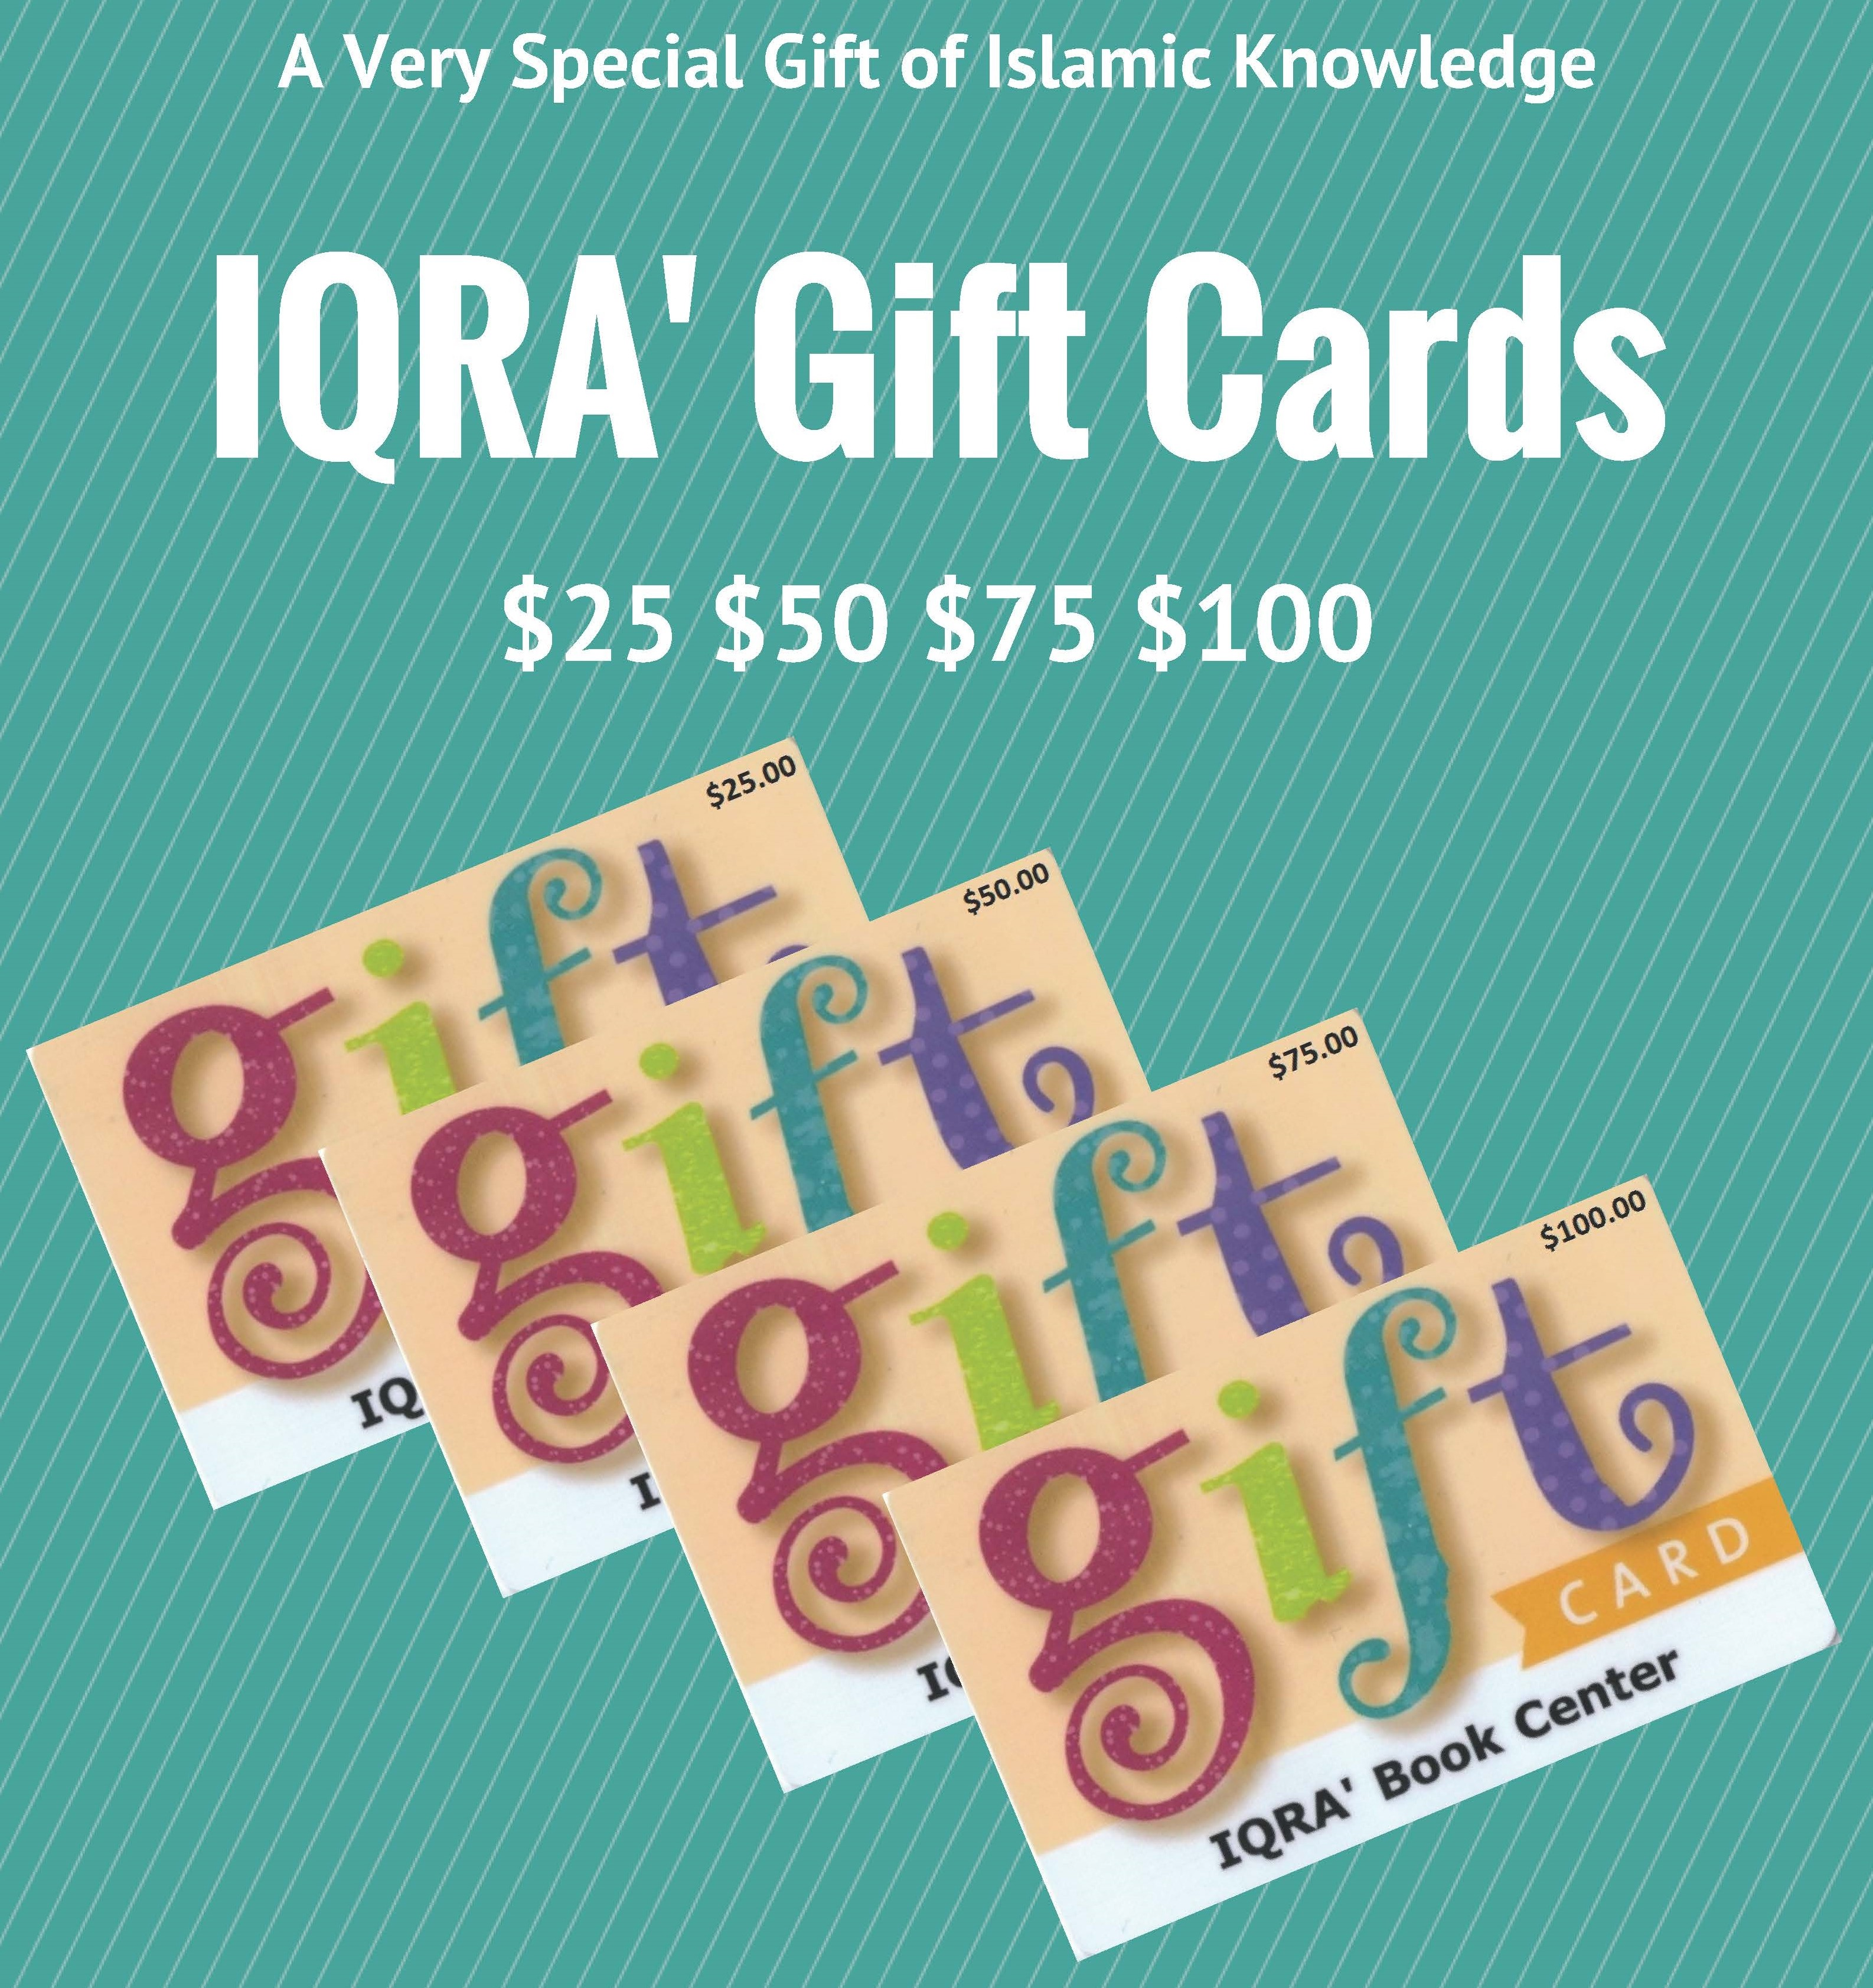 IQRA Gift Card  $25.00